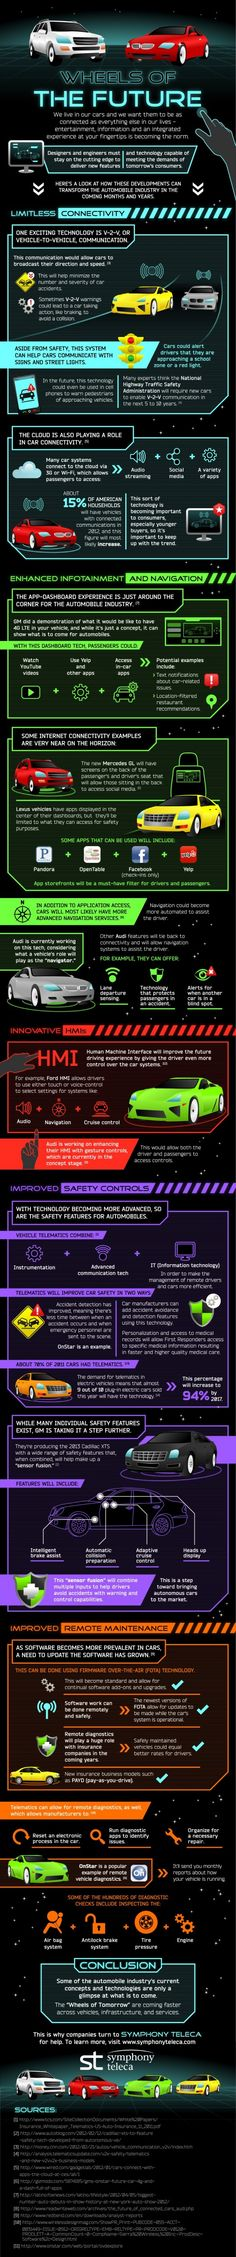 INFOGRAPHIC: MEET THE CONNECTED CAR OF THE FUTURE